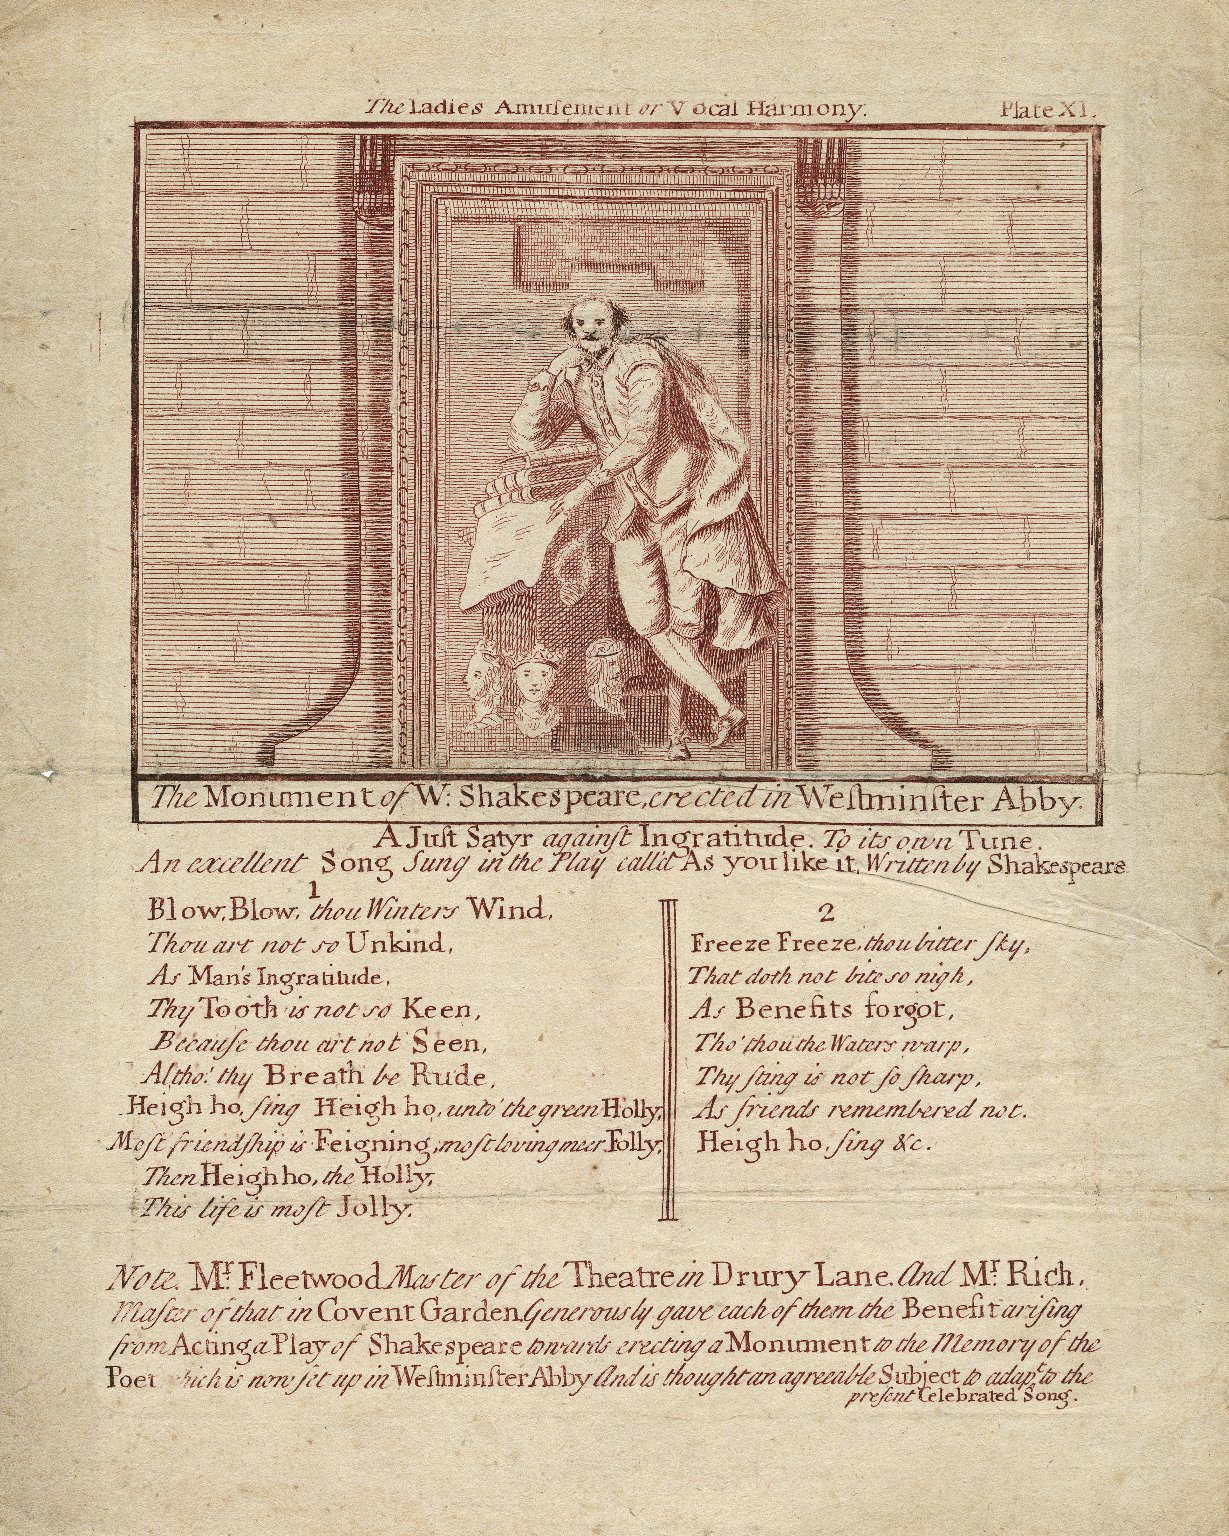 The monument of W. Shakespeare erected in Westminster Abby [printed below]: A just satyr against ingratitude ... an excellant song sung in the play As you like it ... Blow, blow, thou winters wind ... [etc.] [graphic].